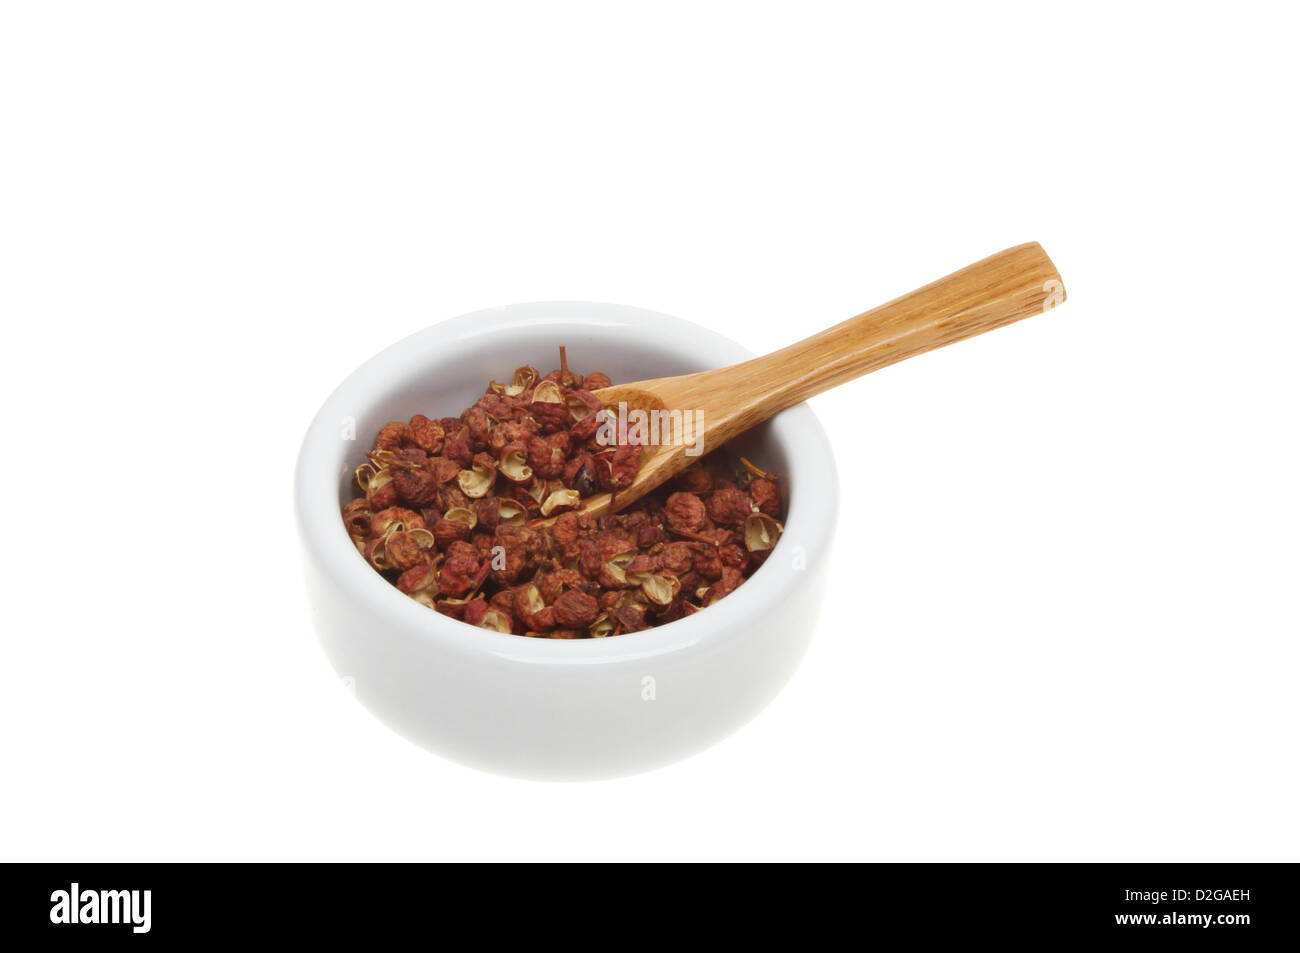 Szechuan pepper with a wooden spoon in a ramekin isolated against white Stock Photo